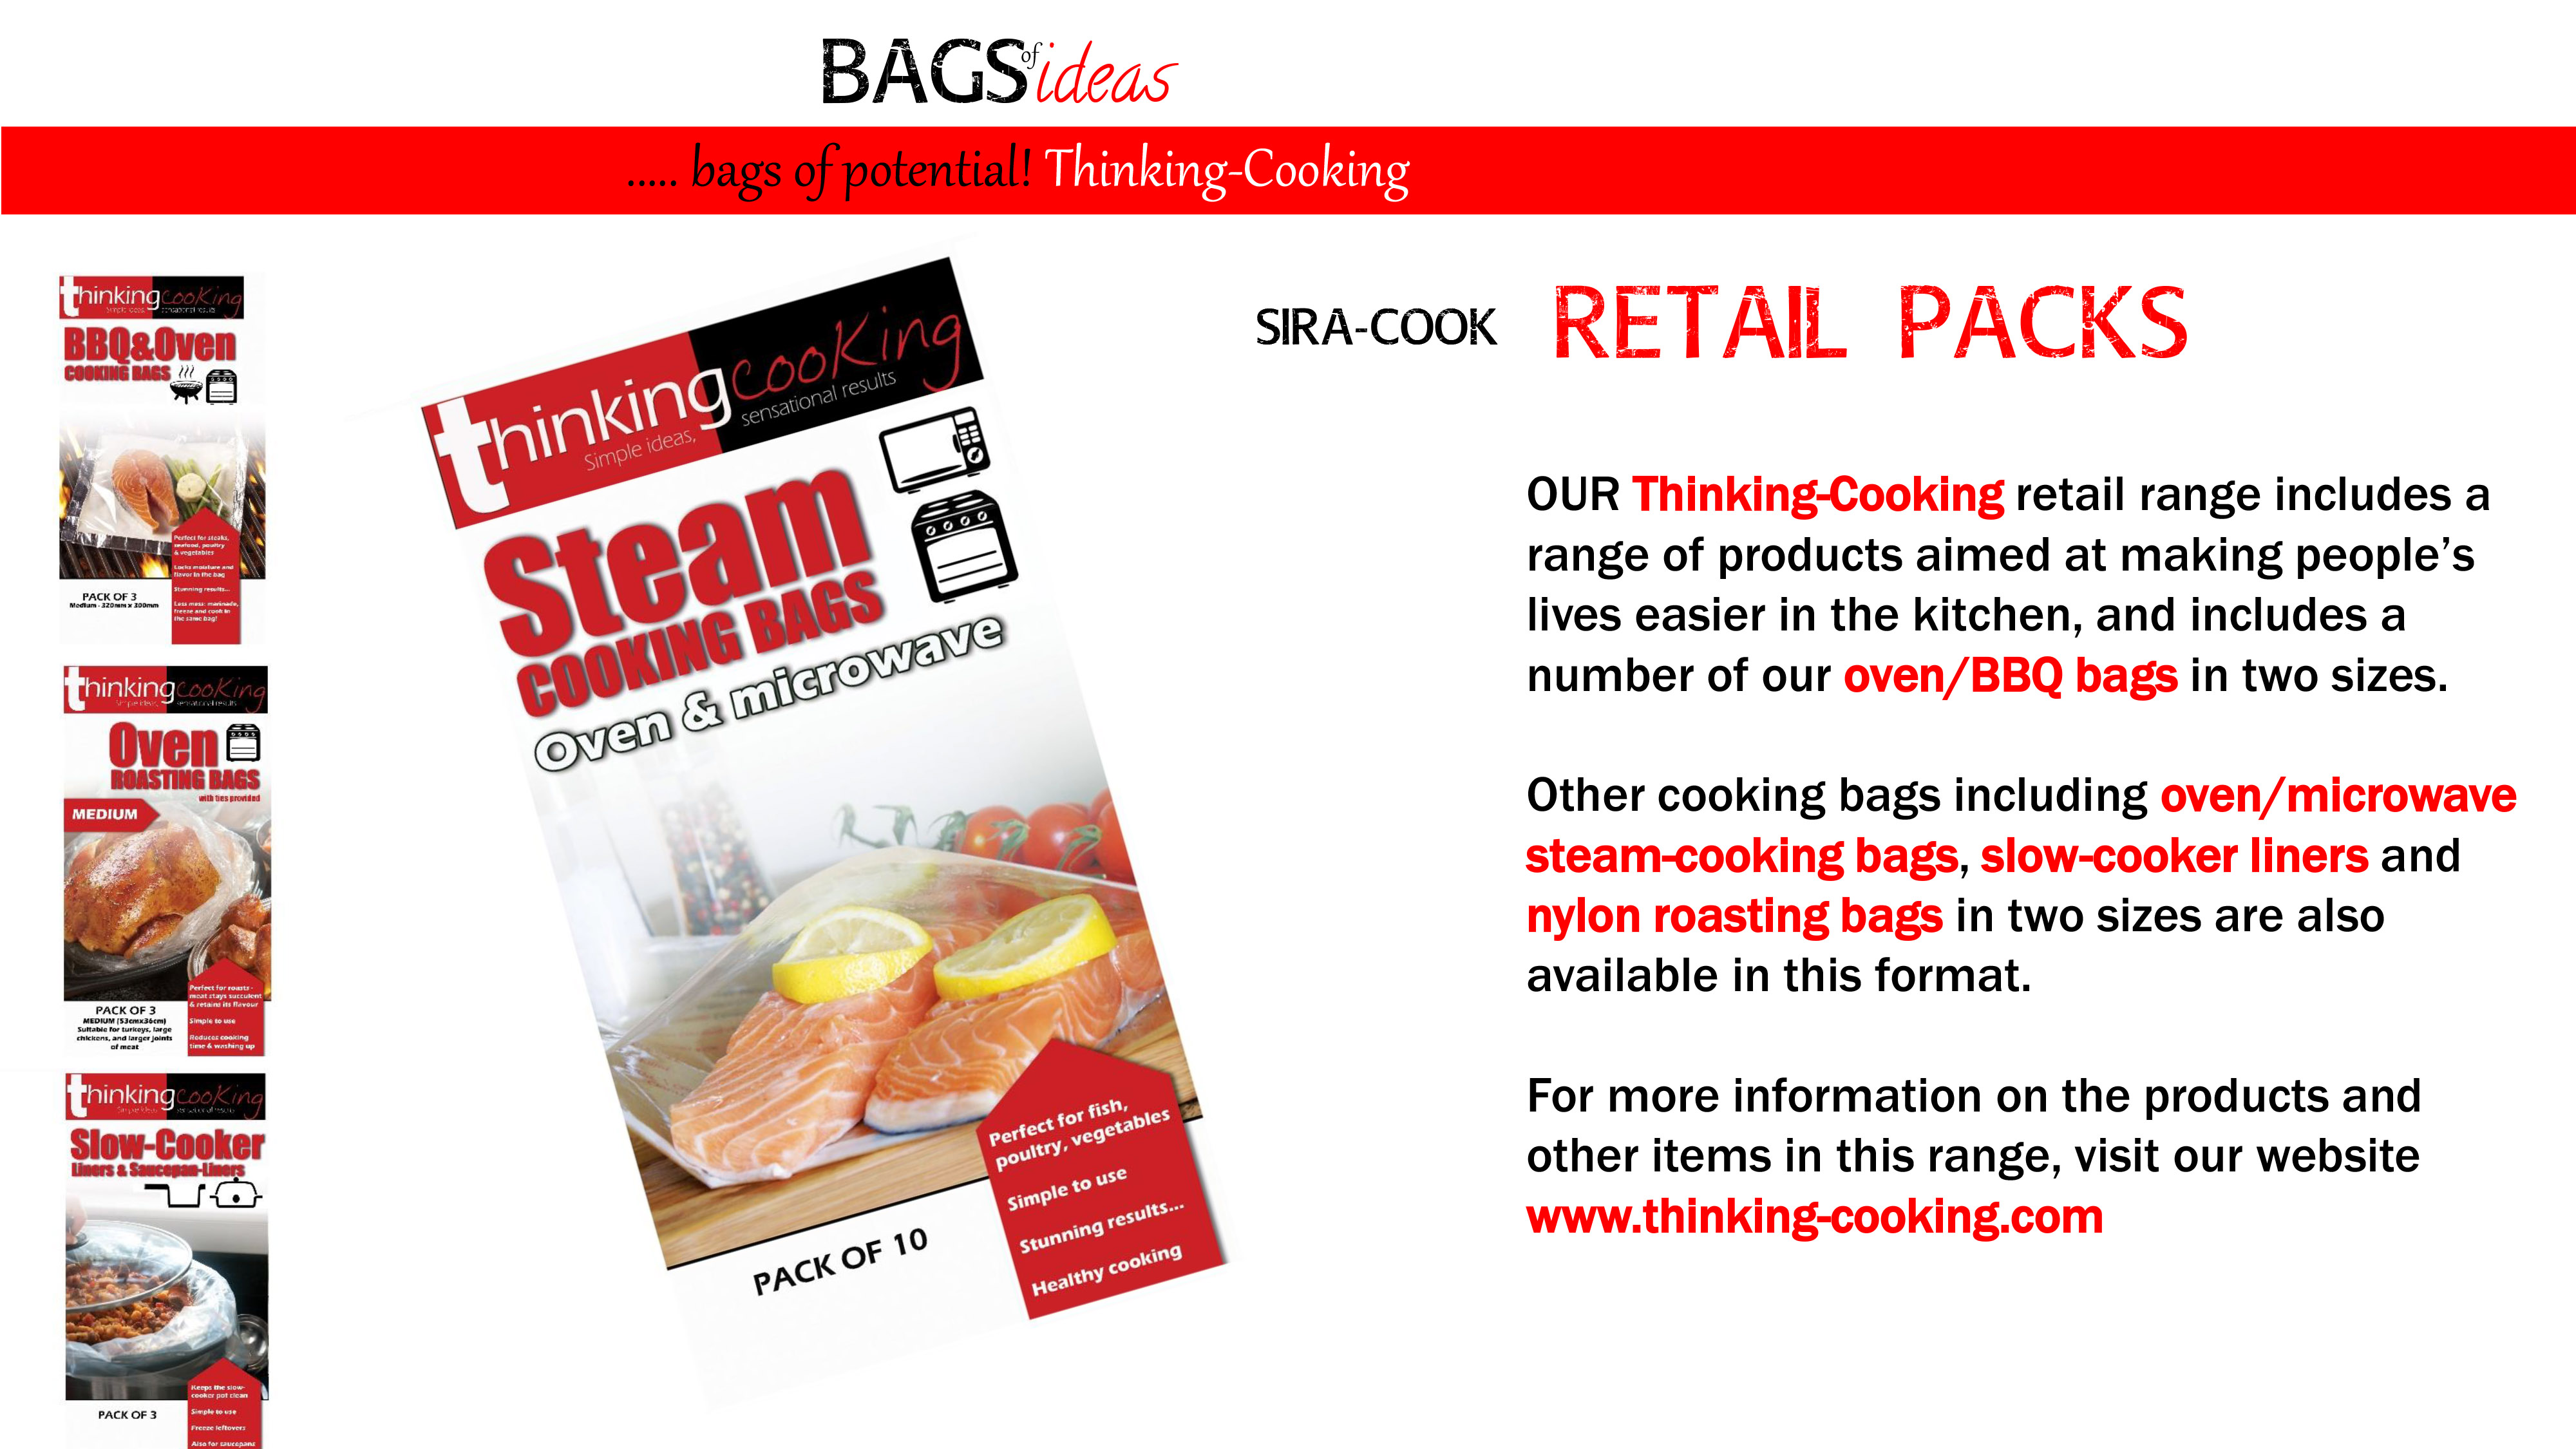 Bags of ideas | cooking bag solutions from Sirane